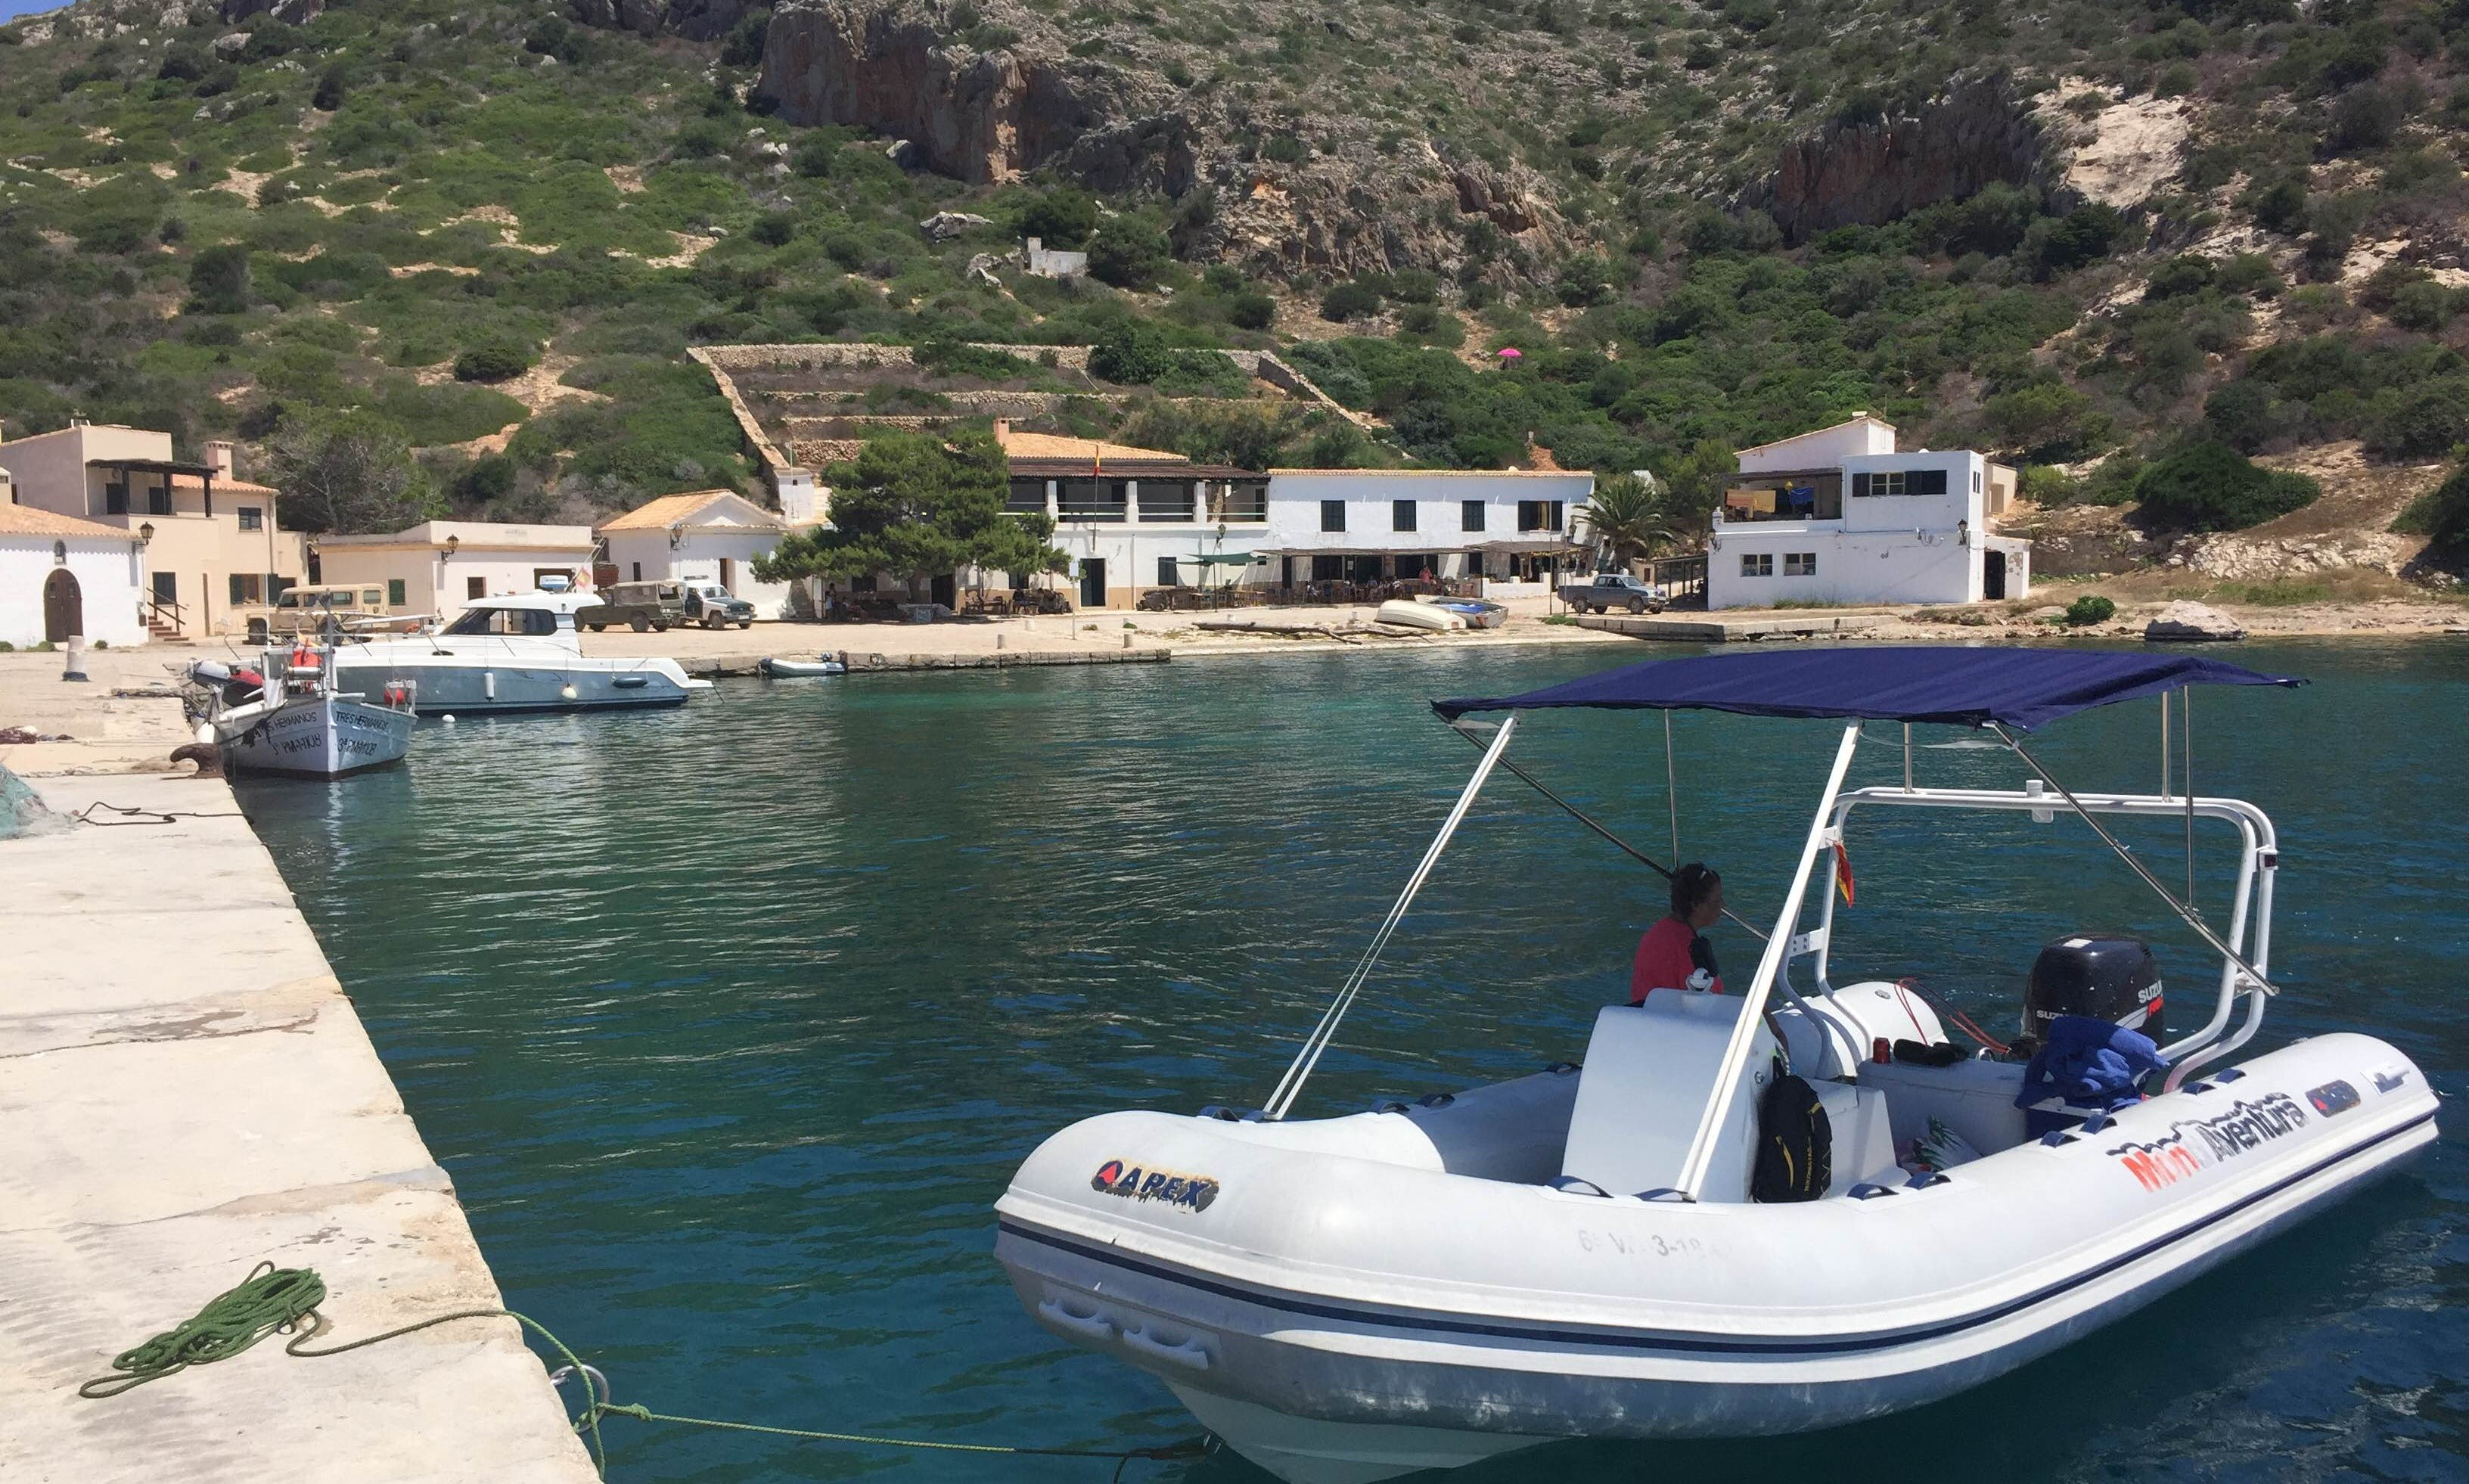 2008 Apex A20 Semi-rigid Inflatable Boat for Rent in Cala Sant Vicenç, Spain